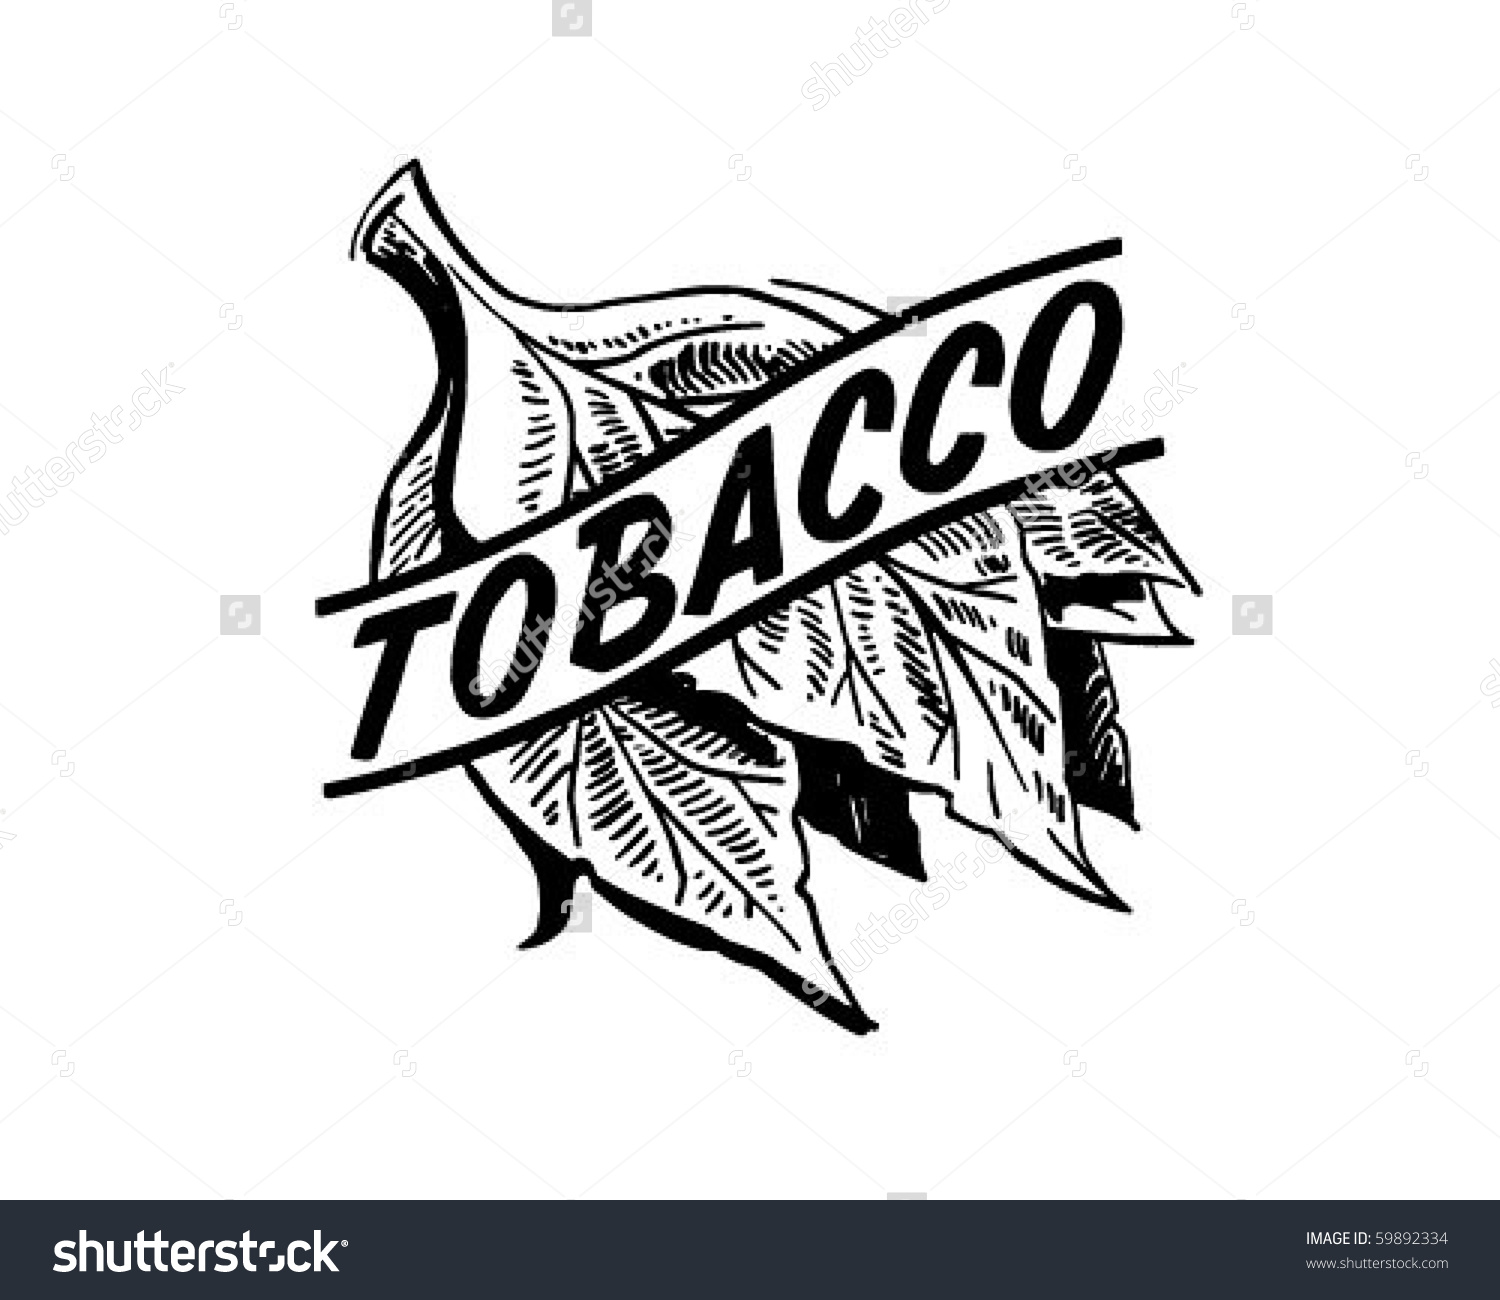 Tobacco Retro Clip Art Stock Vector 59892334.